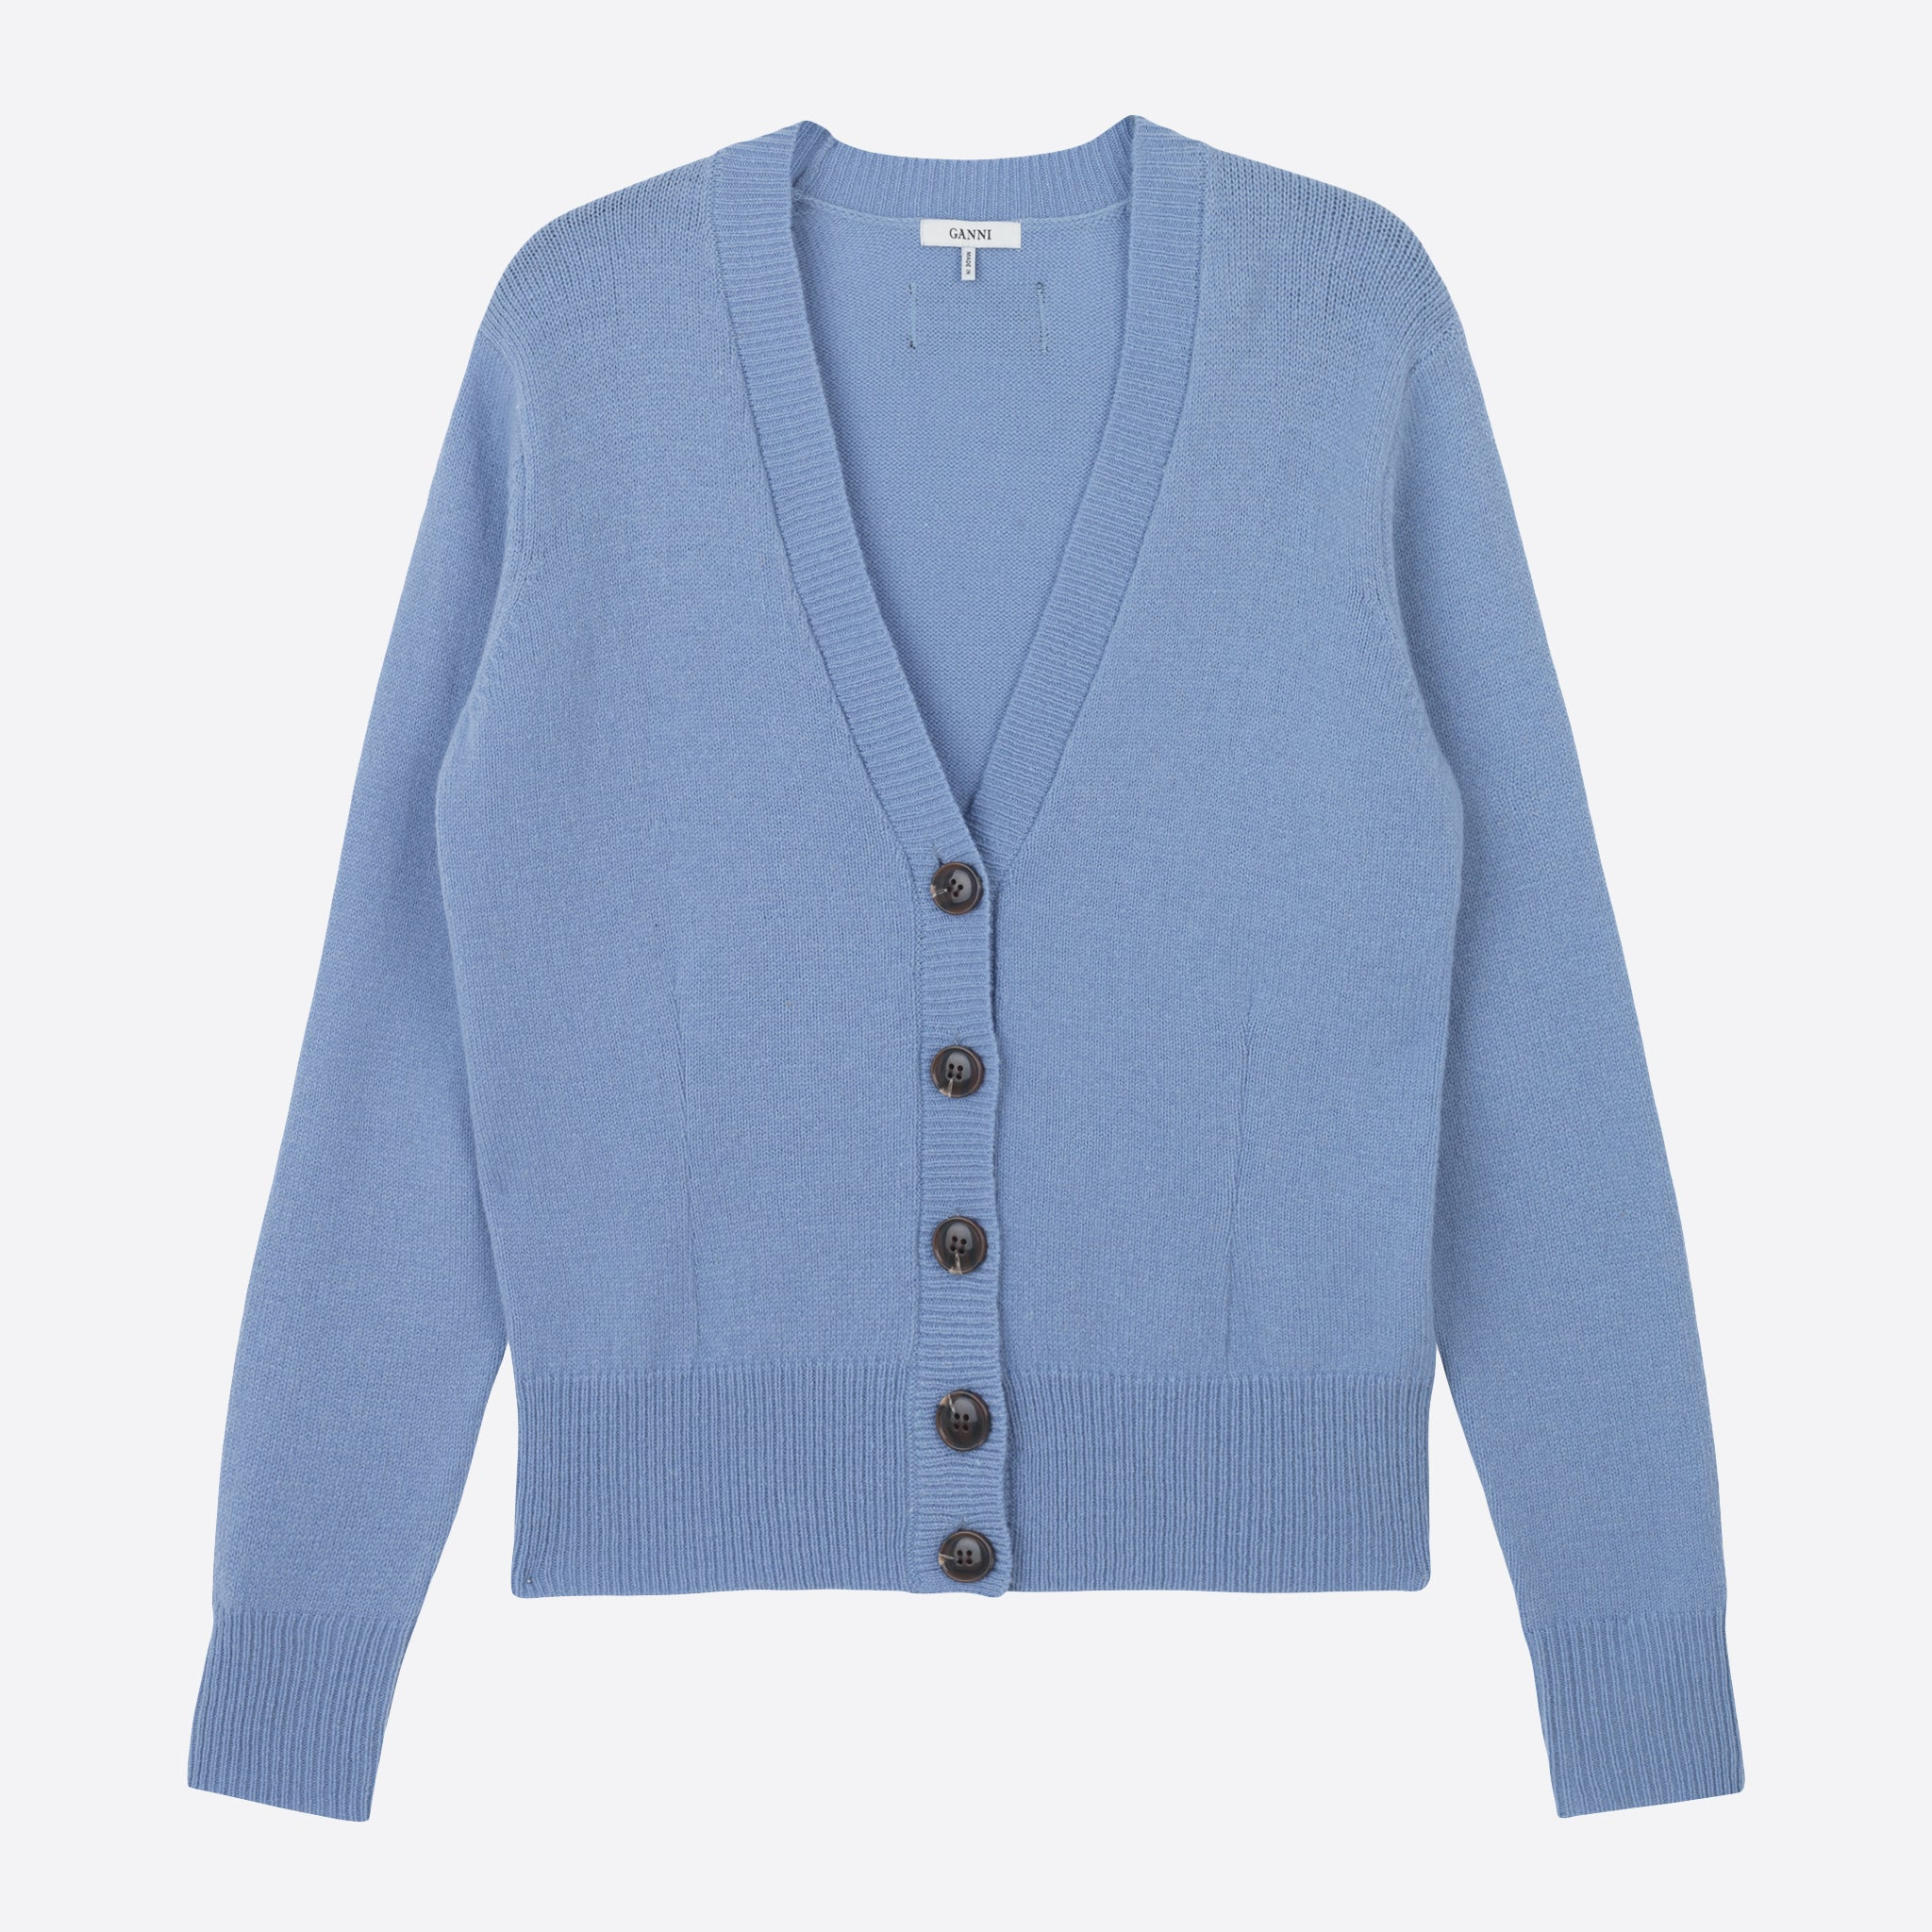 Ganni Wool Knit Cardigan in Forever Blue